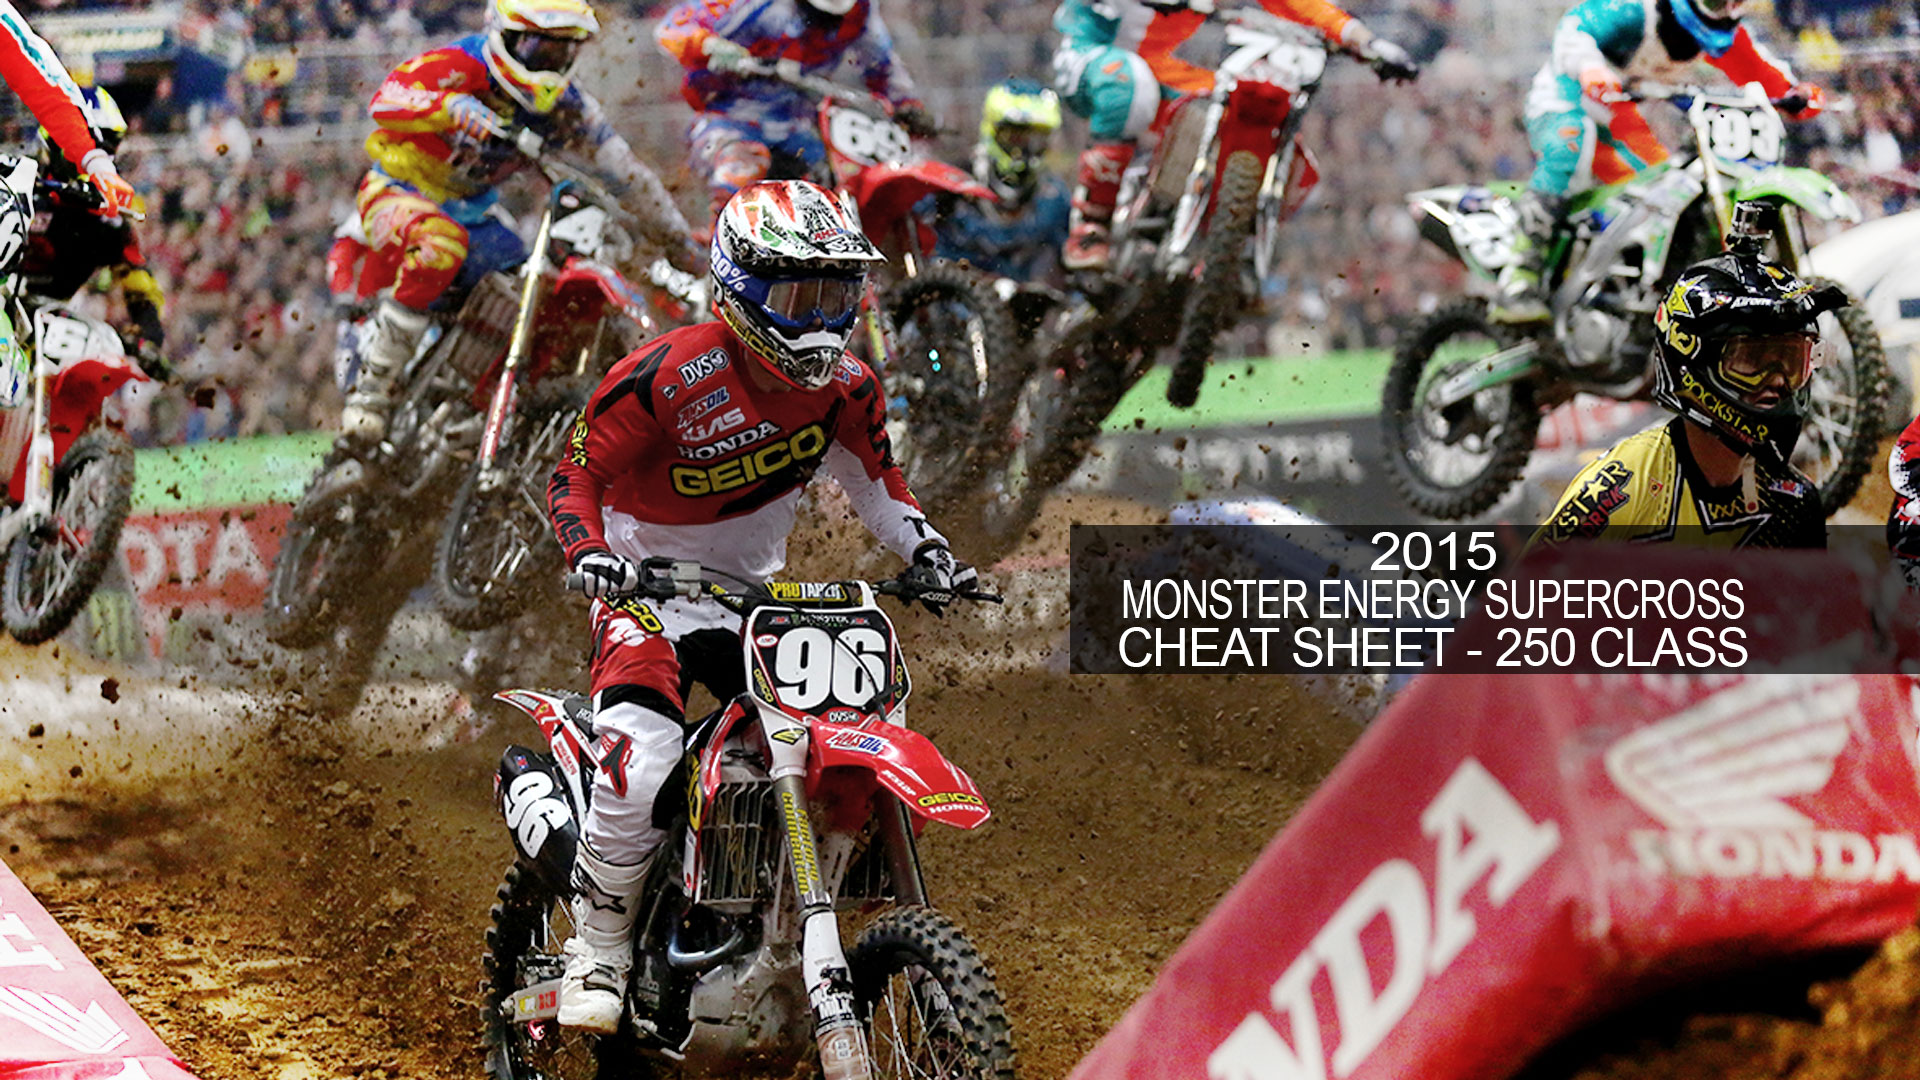 2015 Monster Energy Supercross Cheat Sheet - 250 Lites Class